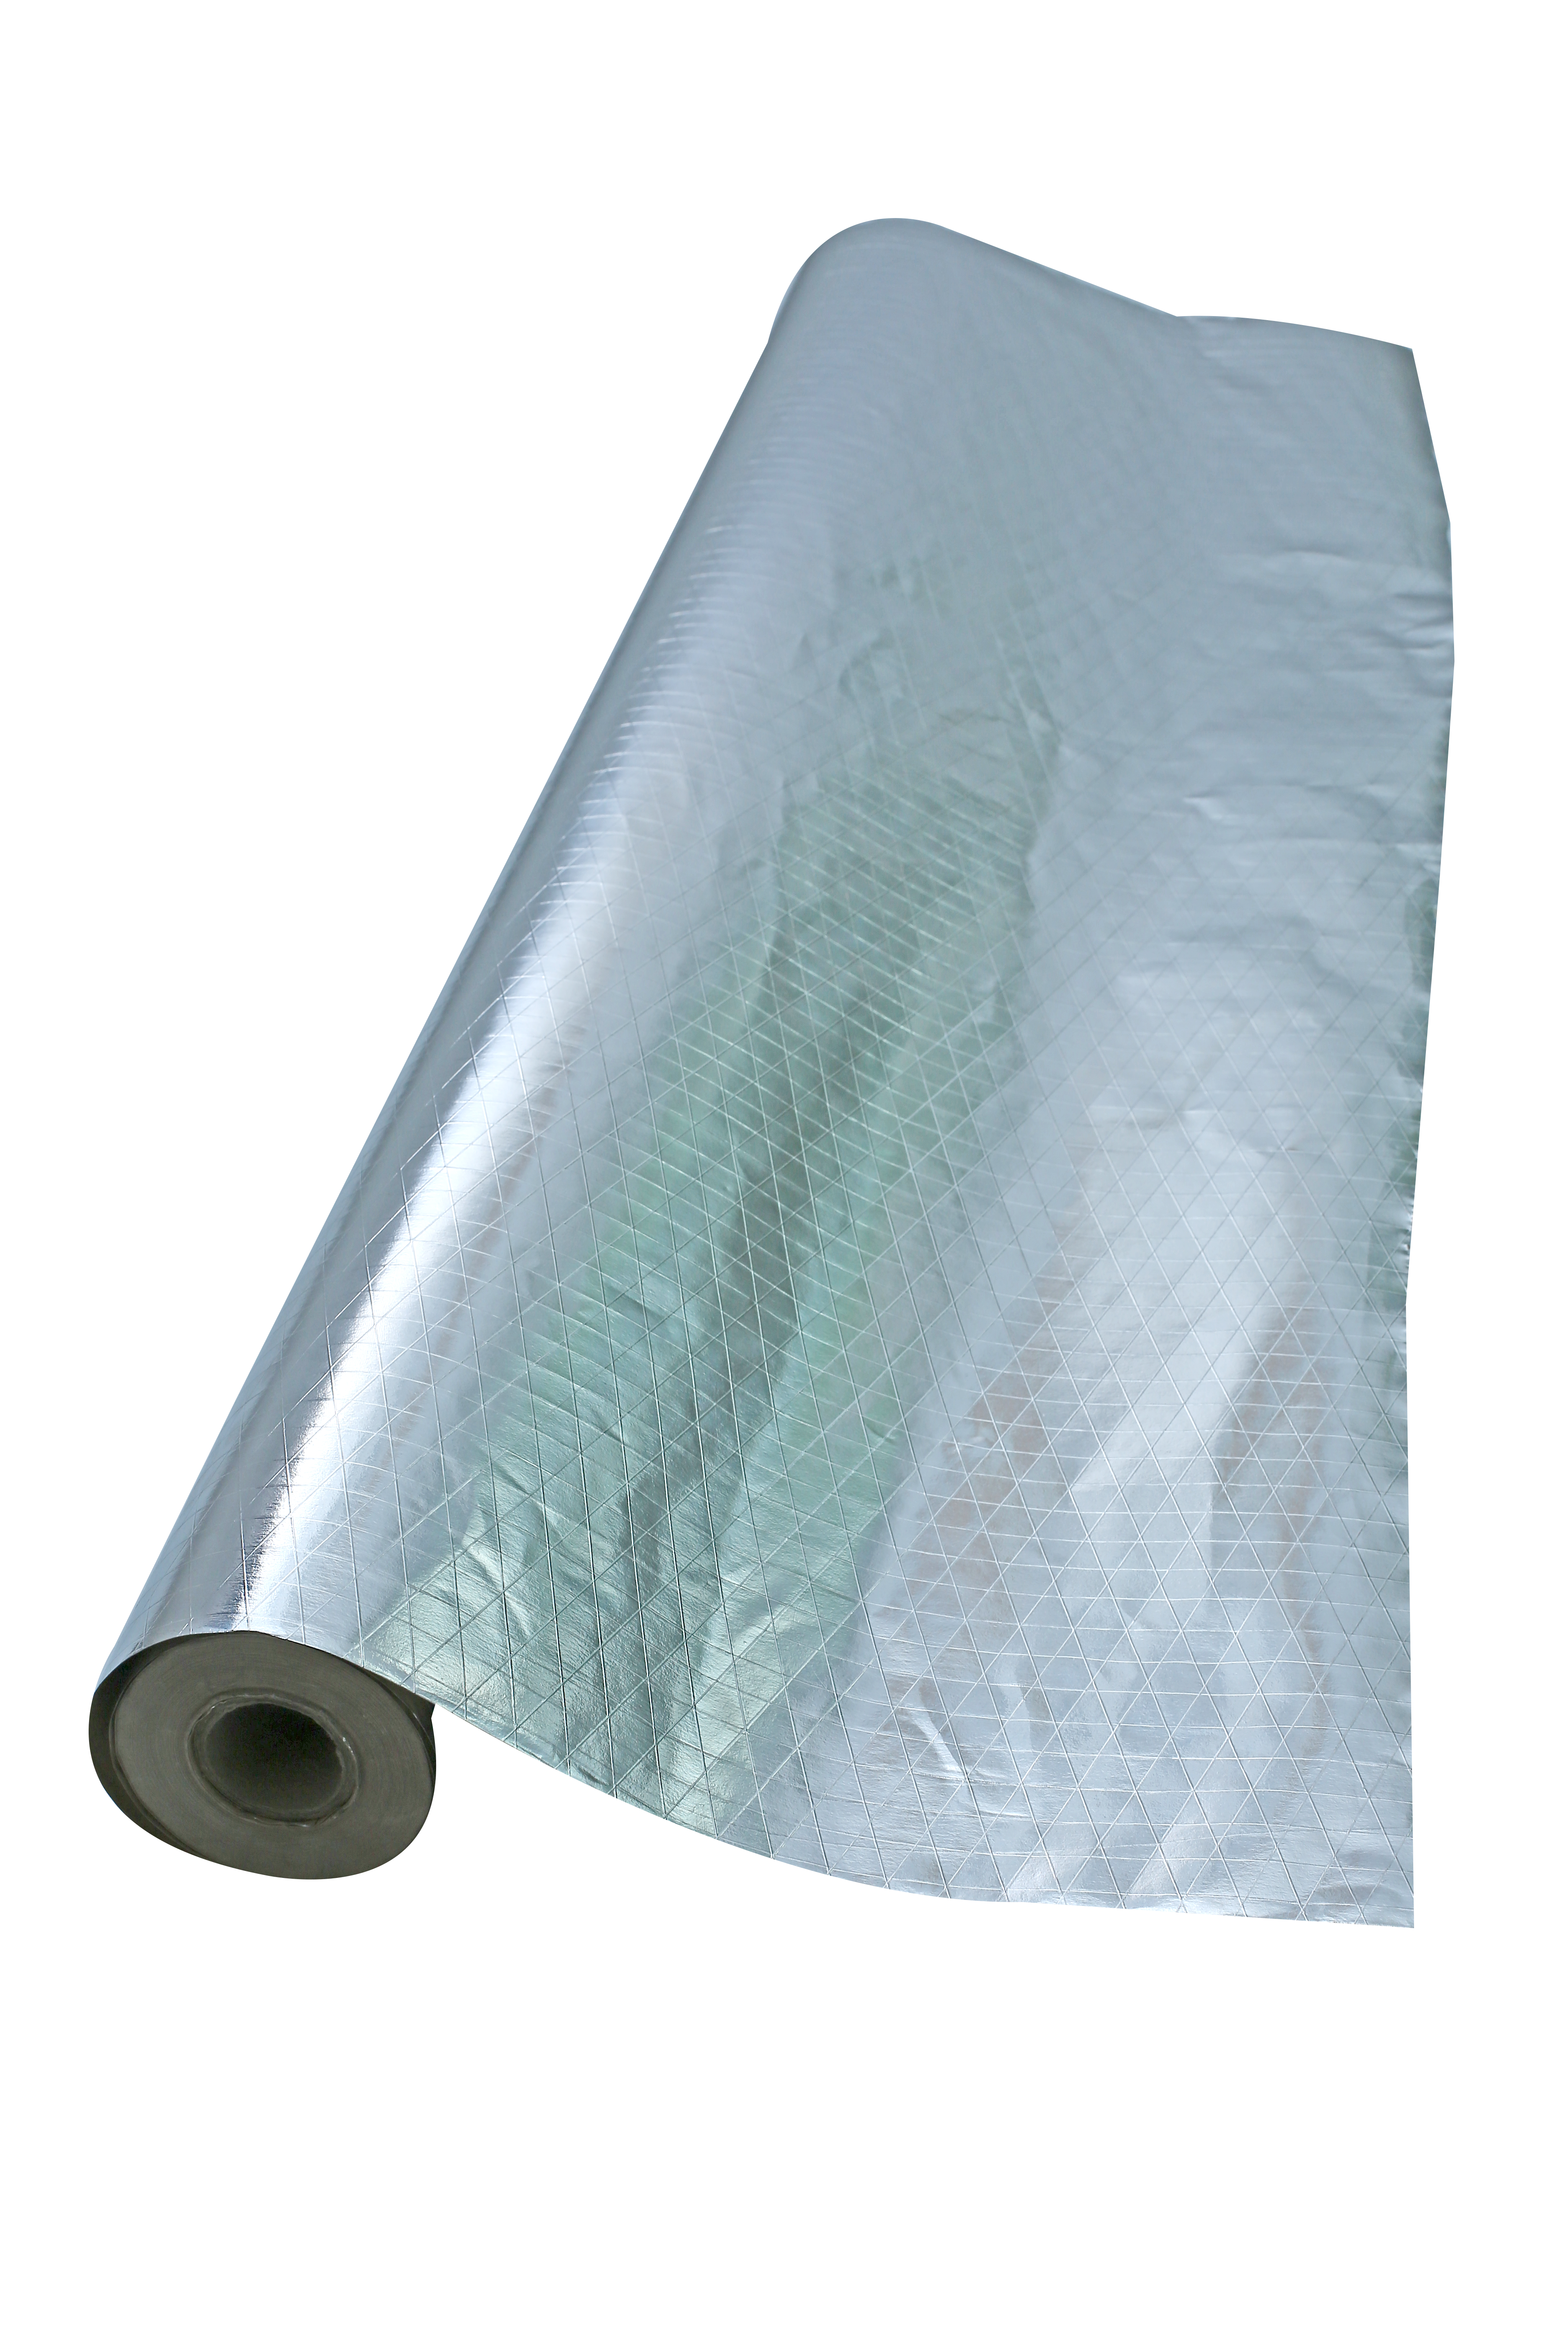 Double Sided Foil Insulation Veneer materials for air-conditioning ducts pipes vessels